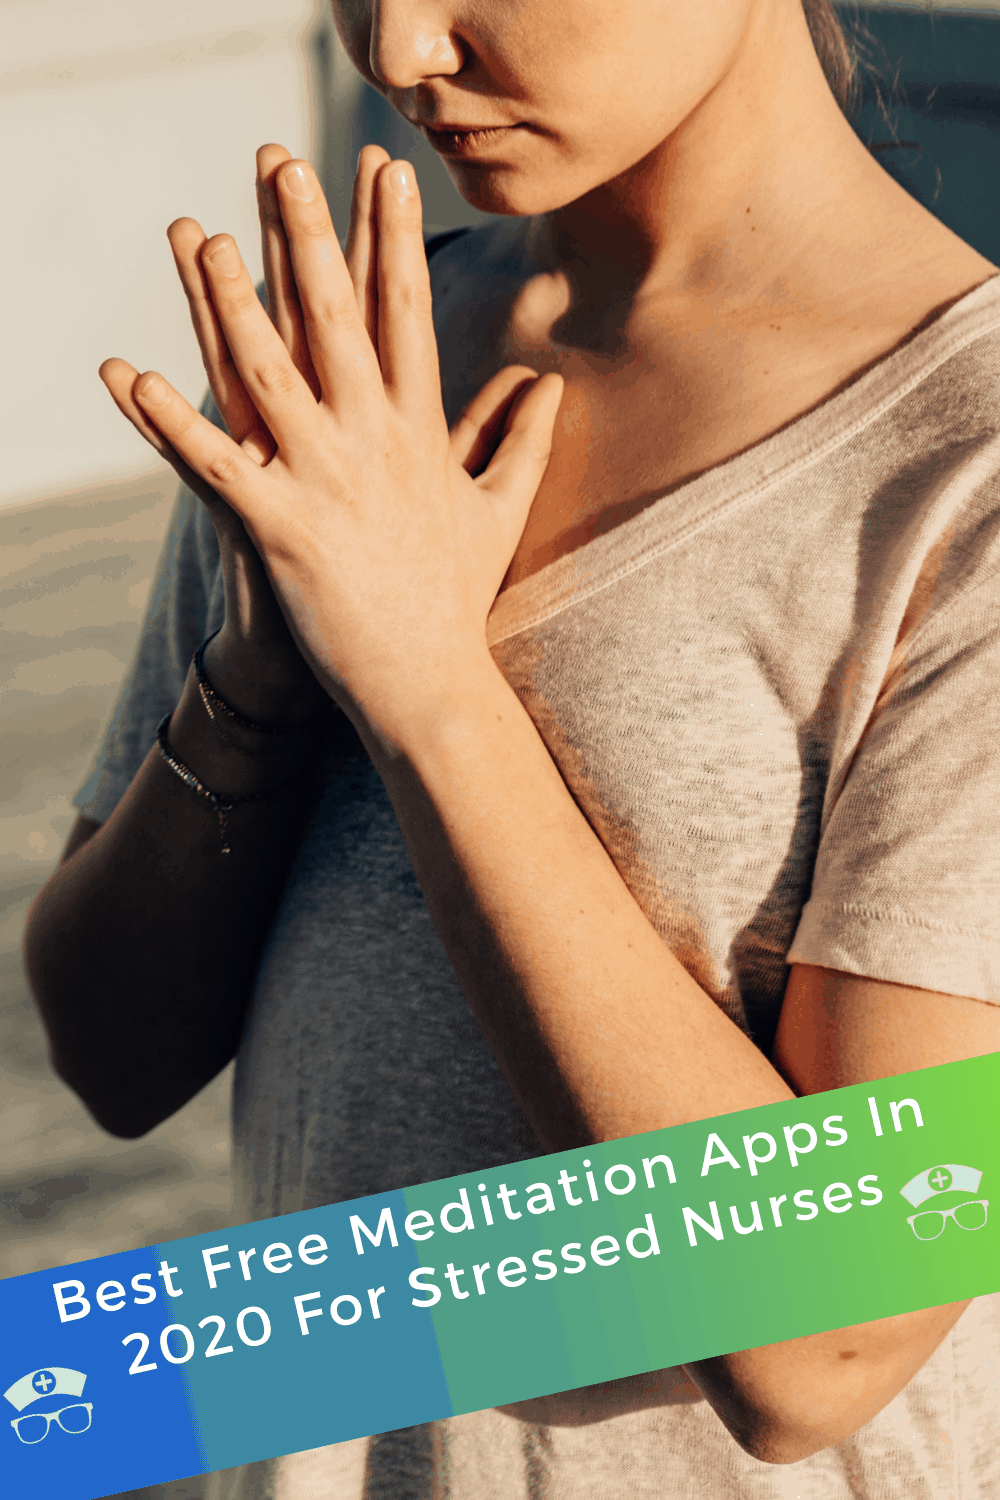 Best Free Meditation Apps In 2020 For Stressed Nurses. If you need some guided deep breathing to help you relax, then these are the best free meditation apps of 2020 - for both Android and iOS! #thenerdynurse #nurse #nurse #stress #mediation #apps #free